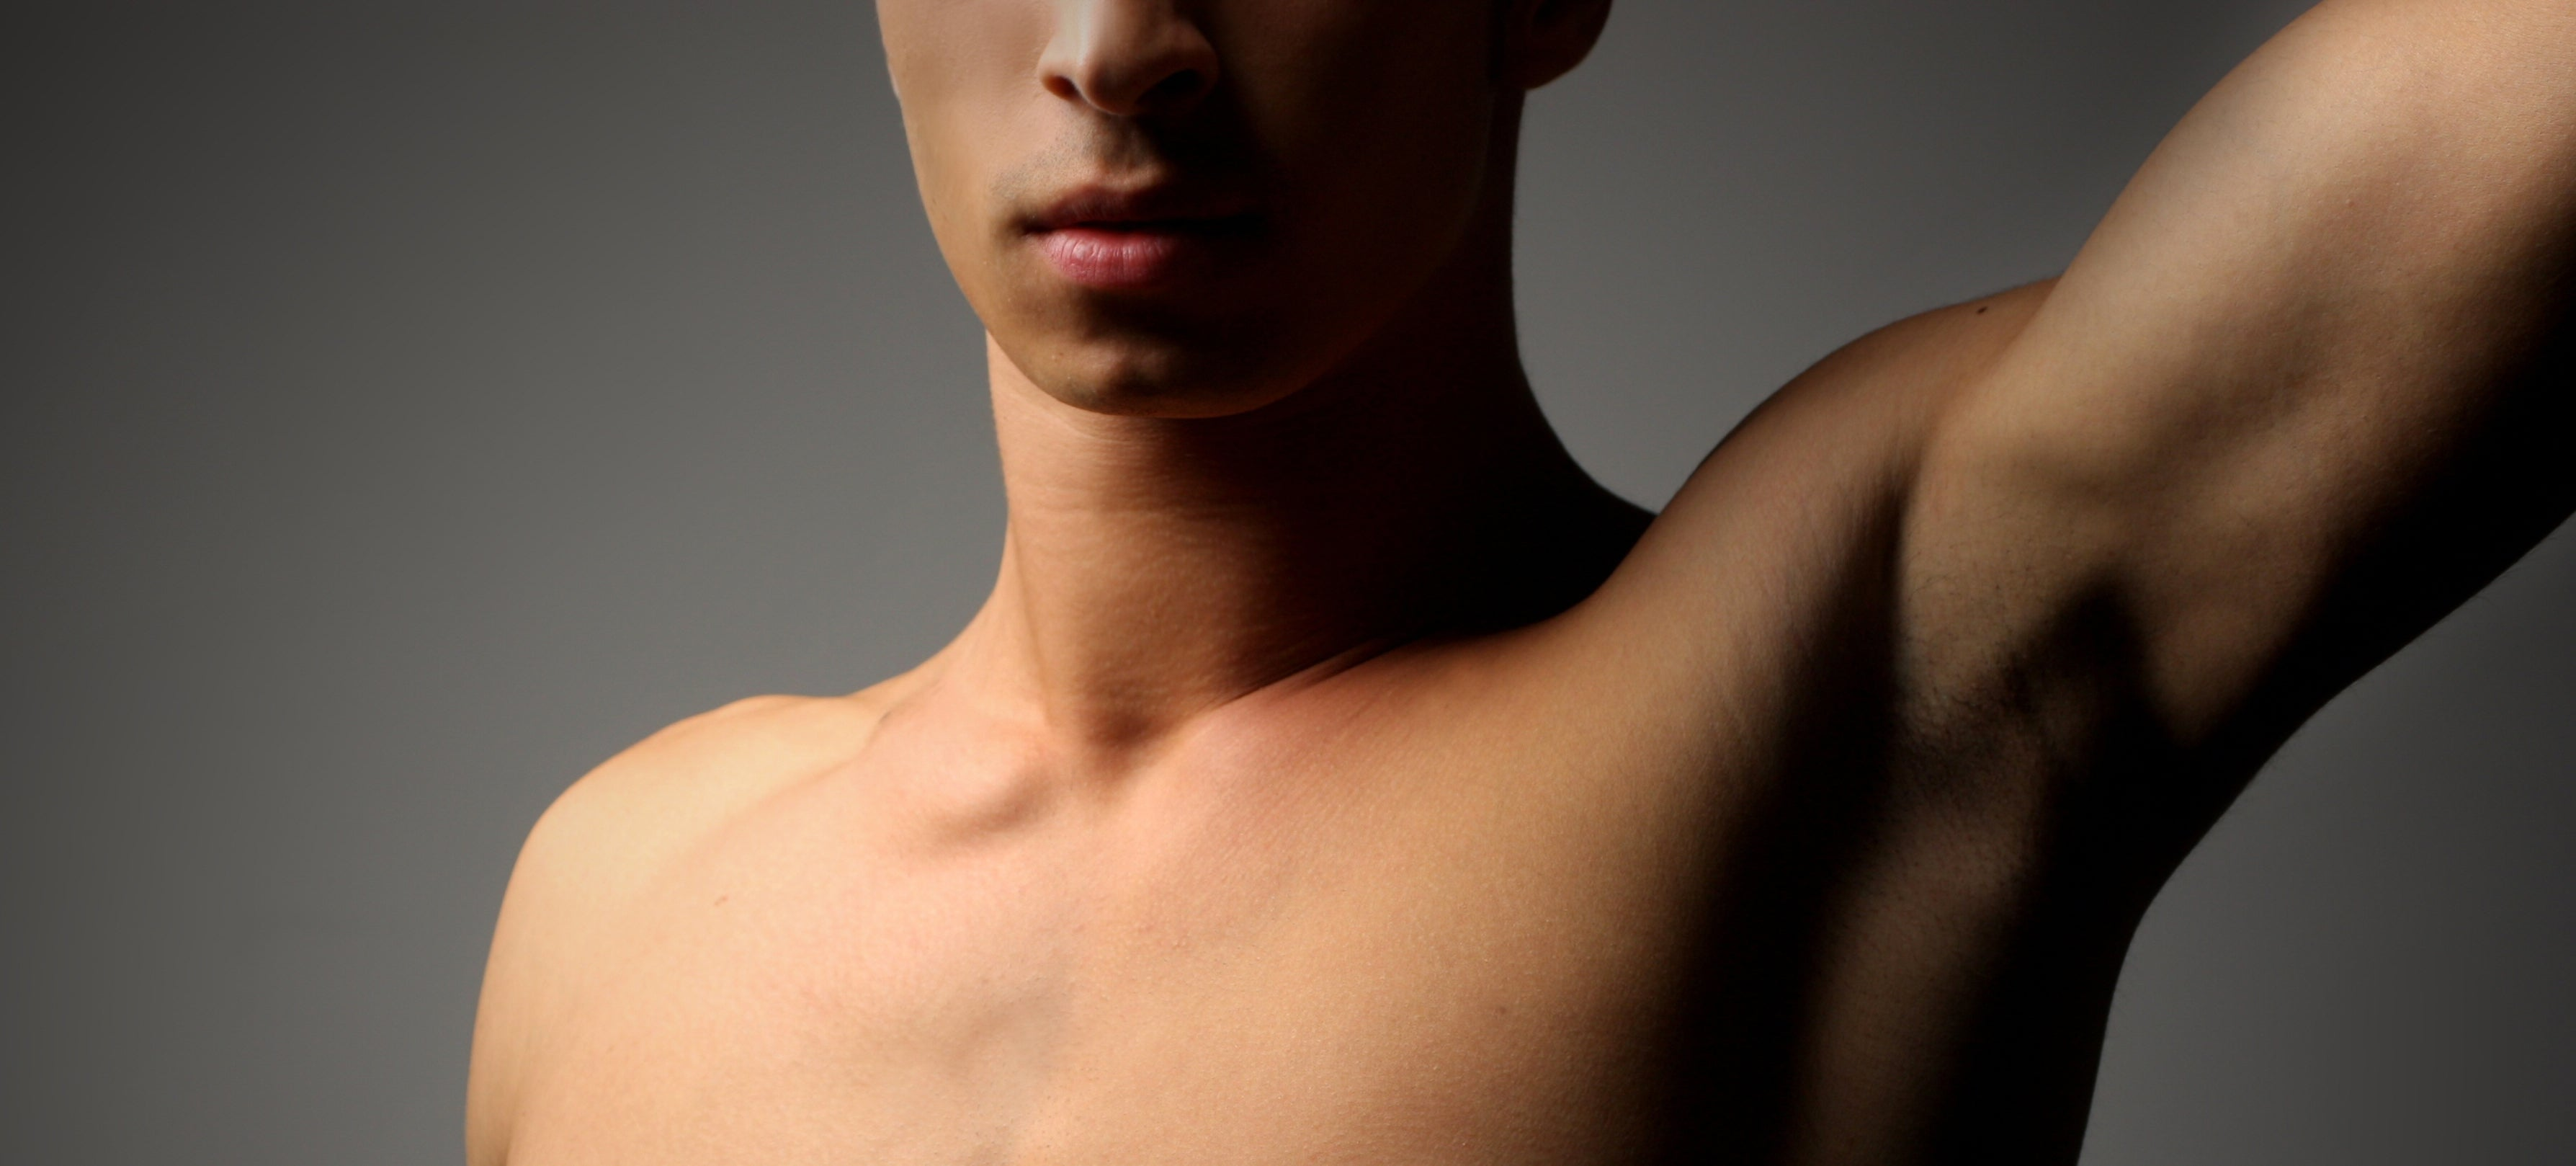 Why Your Armpits Smell So Bad